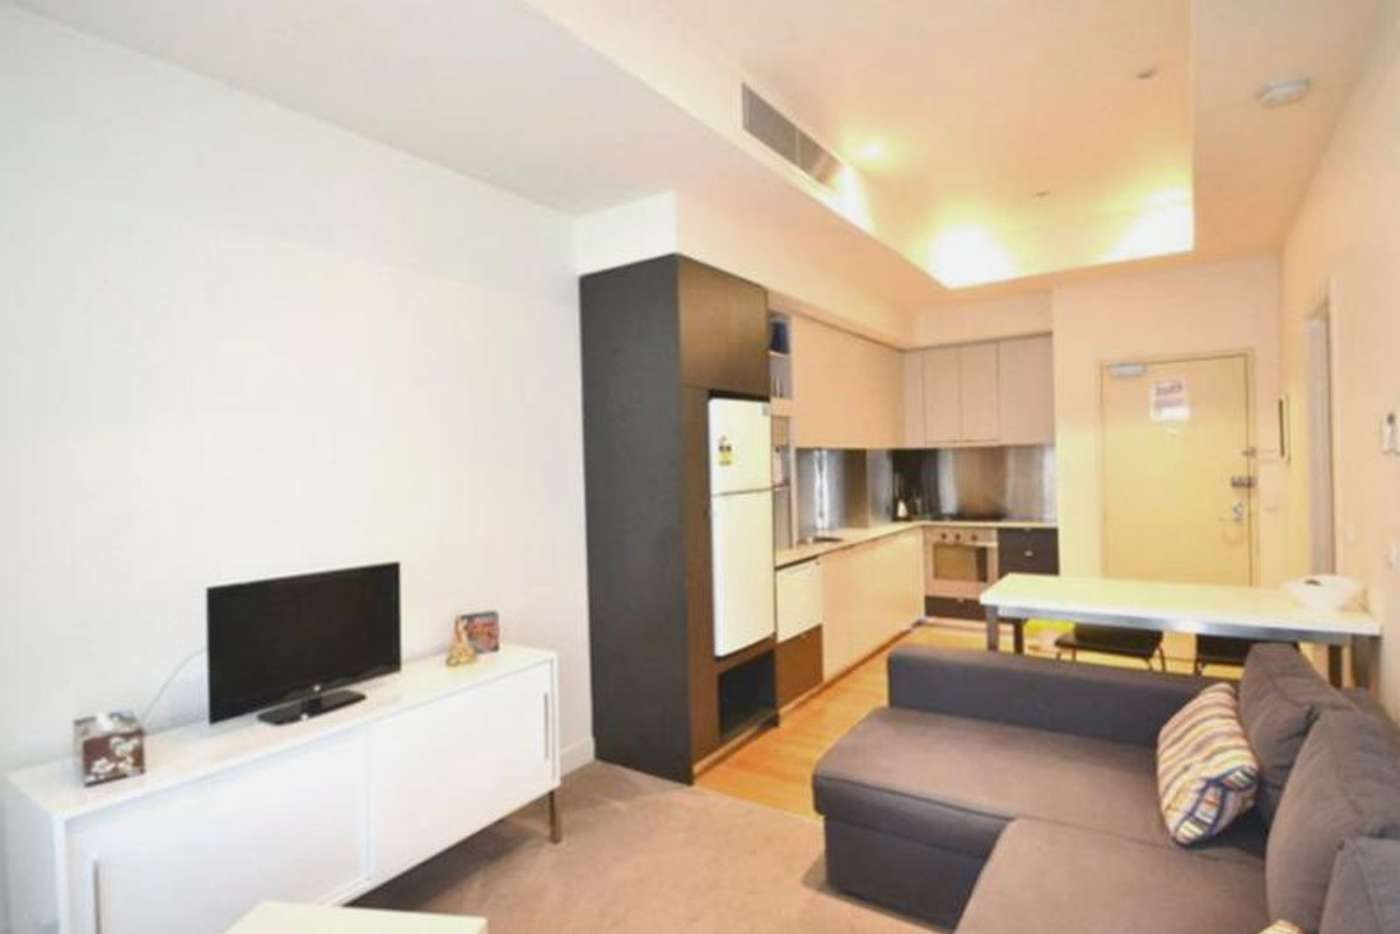 Main view of Homely apartment listing, 504/233 Collins Street, Melbourne VIC 3000